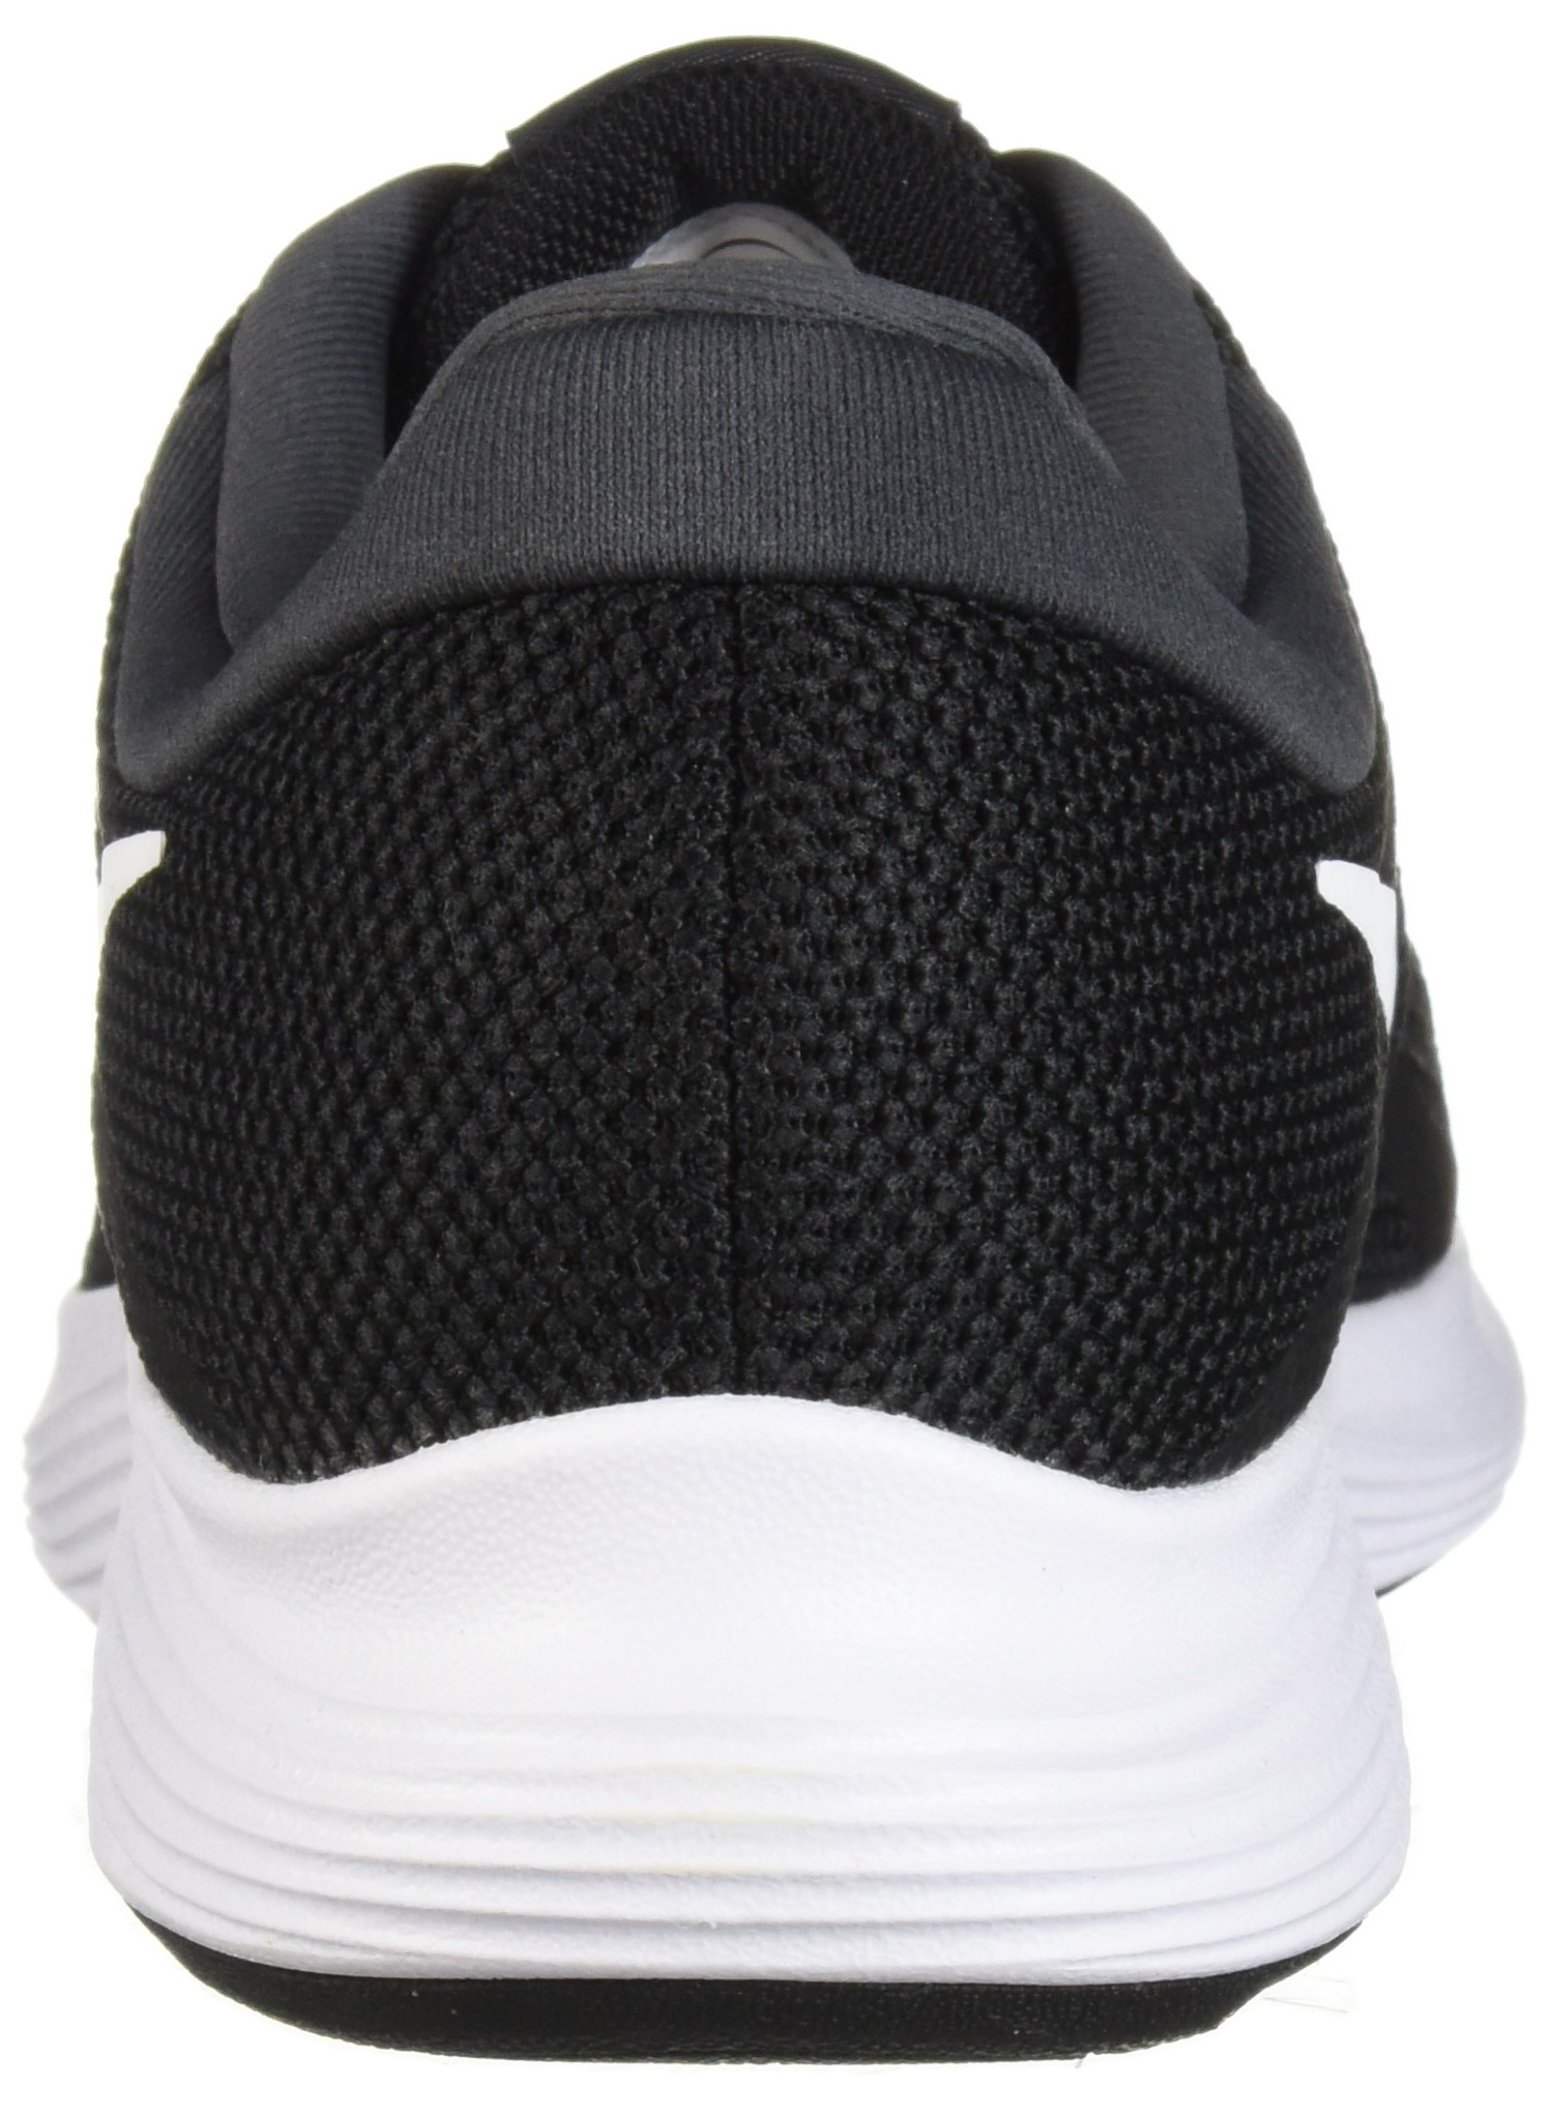 Nike Men's Revolution 4 Running Shoe, Black/White-Anthracite, 6.5 Regular US by Nike (Image #2)